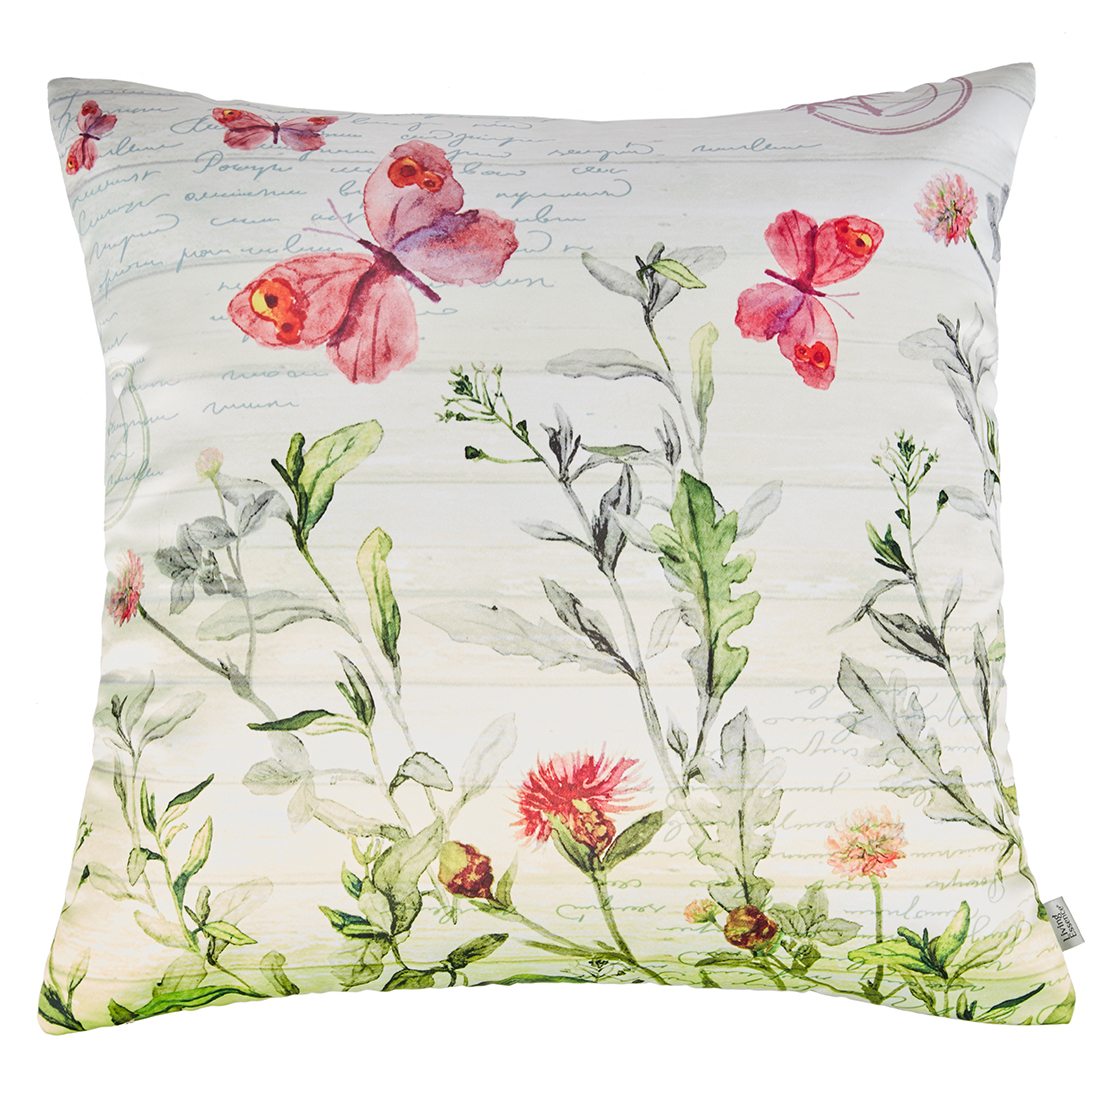 Digital Cushion Cover Butterfly Cushion Covers in Poly Satin Colour by Living Essence